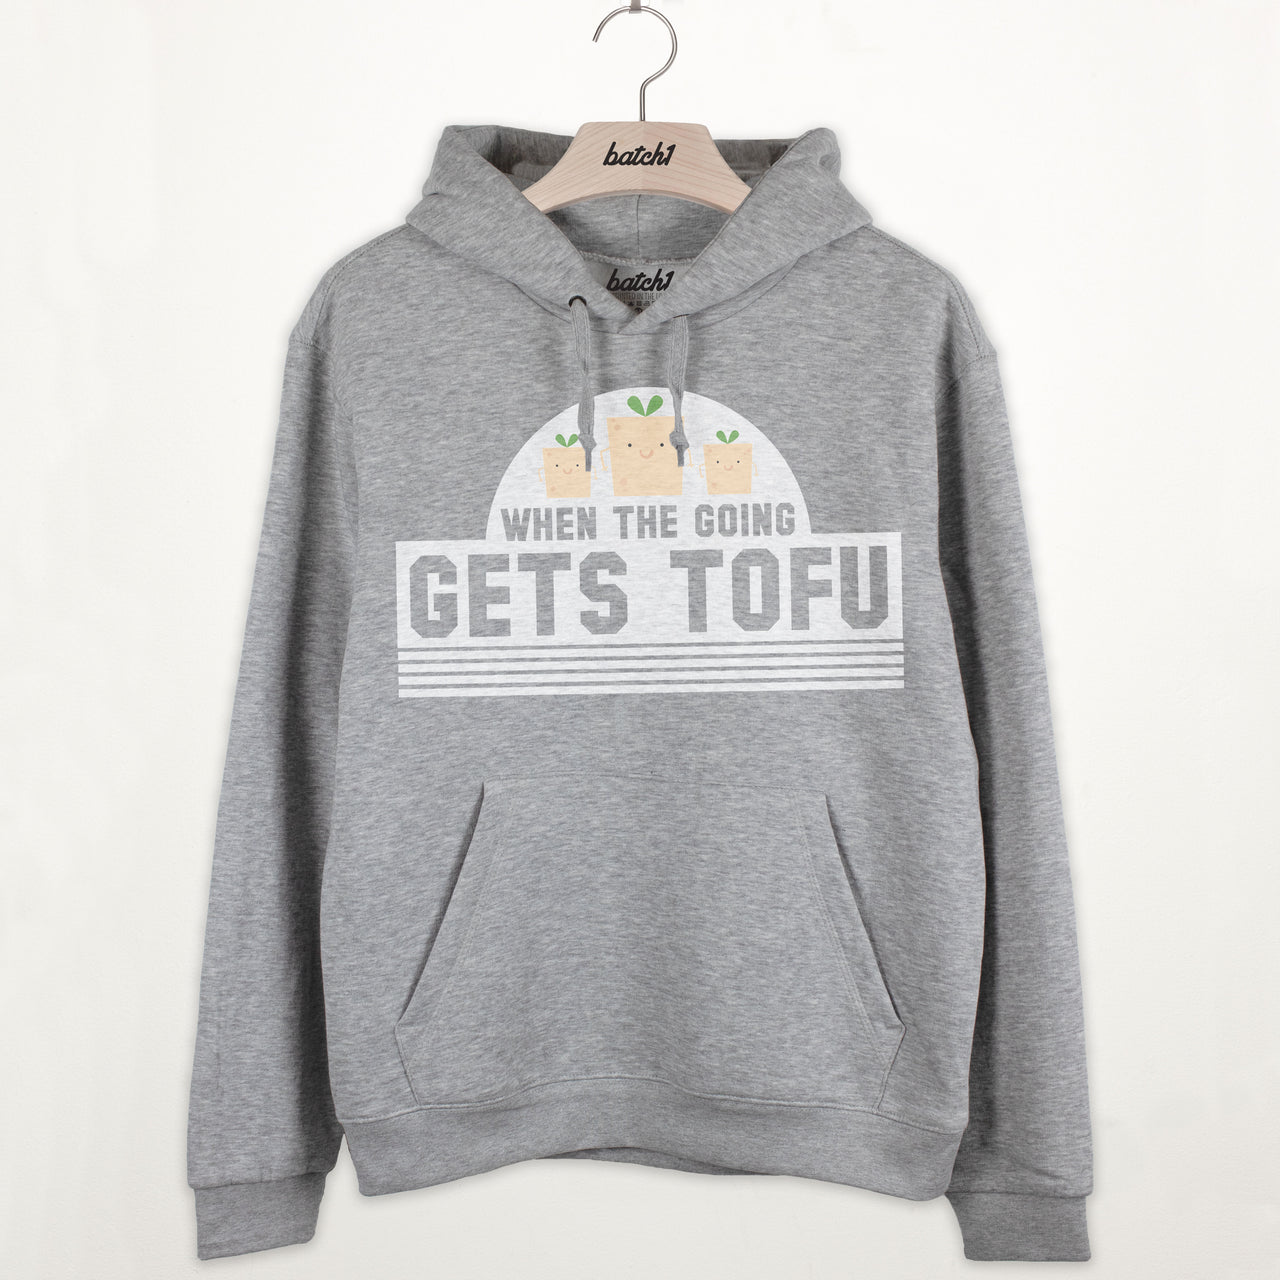 When The Going Gets Tofu Premium Slogan Hoodie